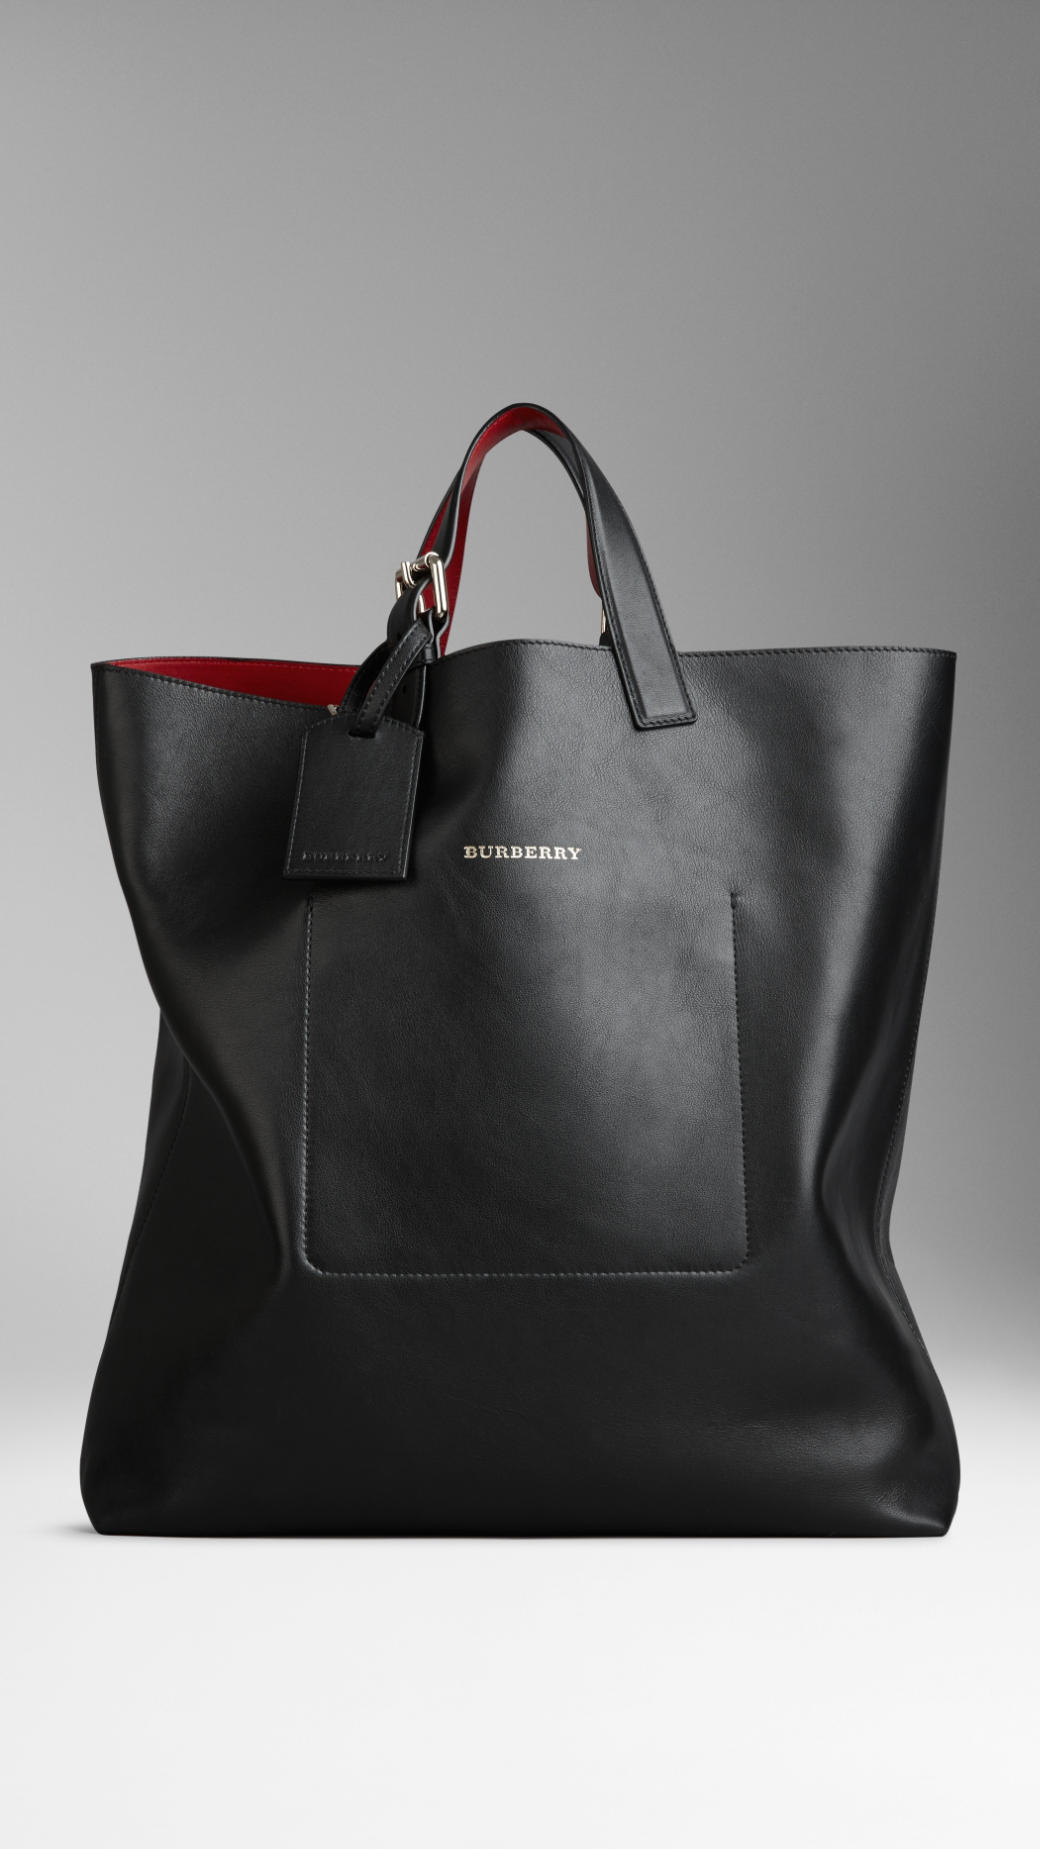 Lyst - Burberry Large Bonded Leather Portrait Tote Bag in ...